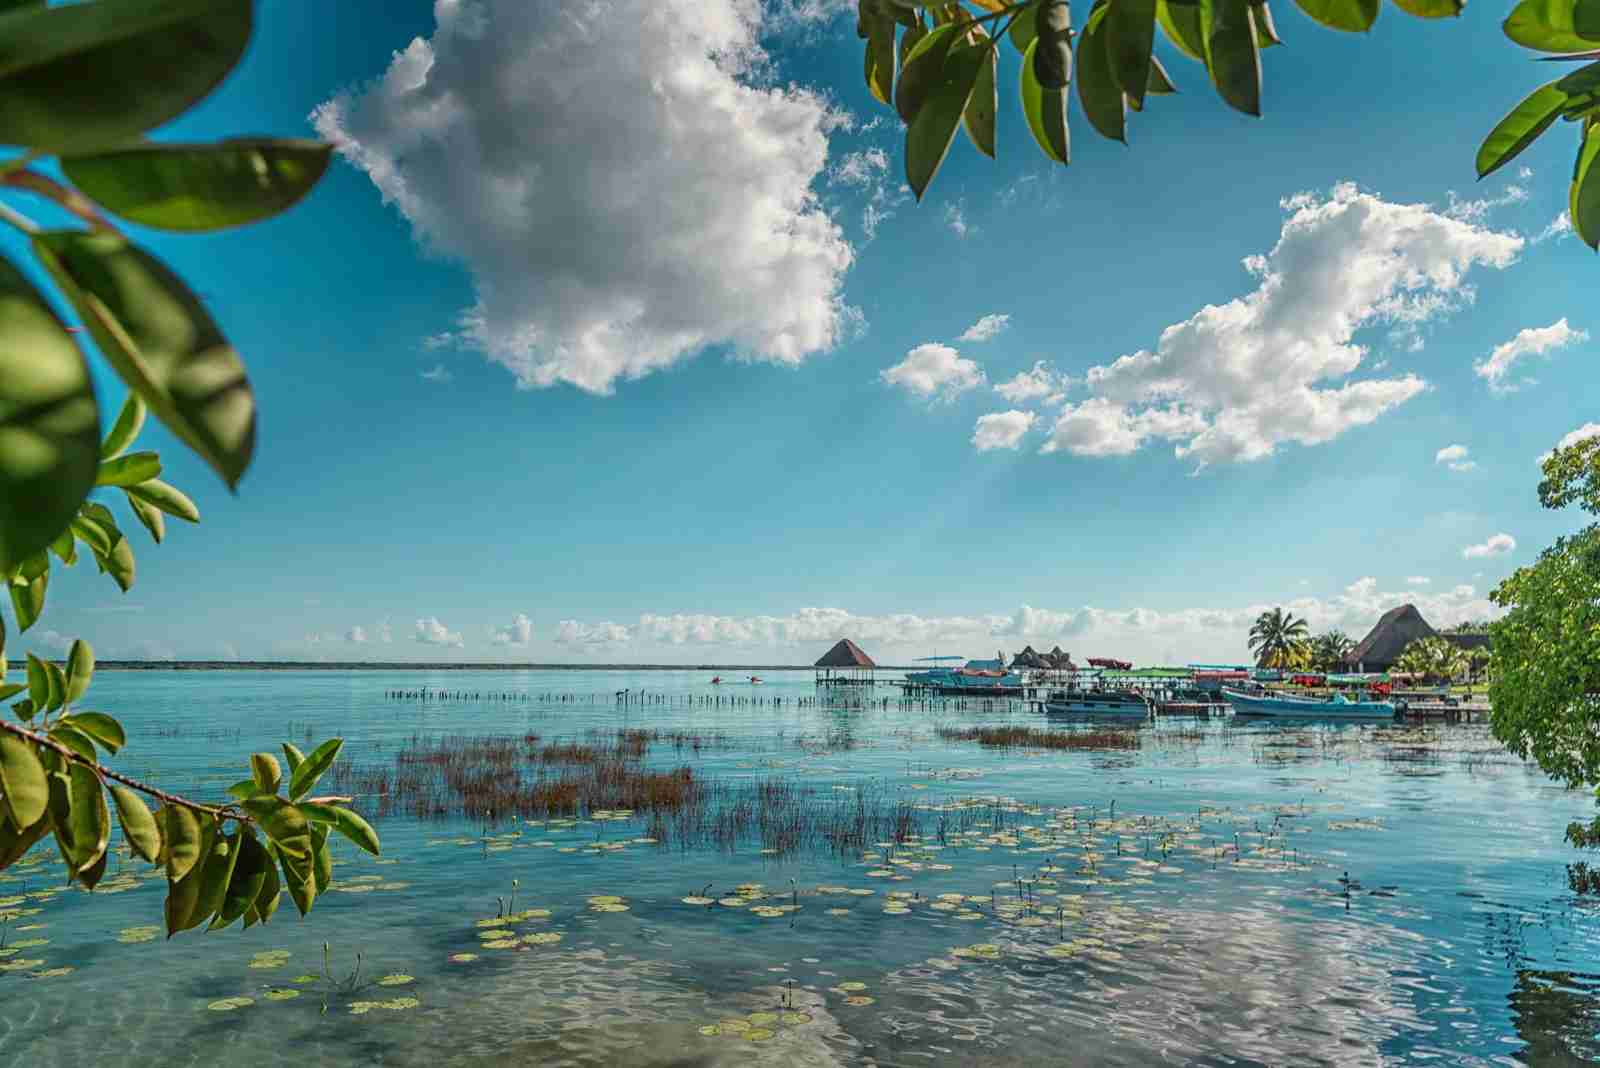 Bacalar. (Photo by Elisa Blanca/Shutterstock)